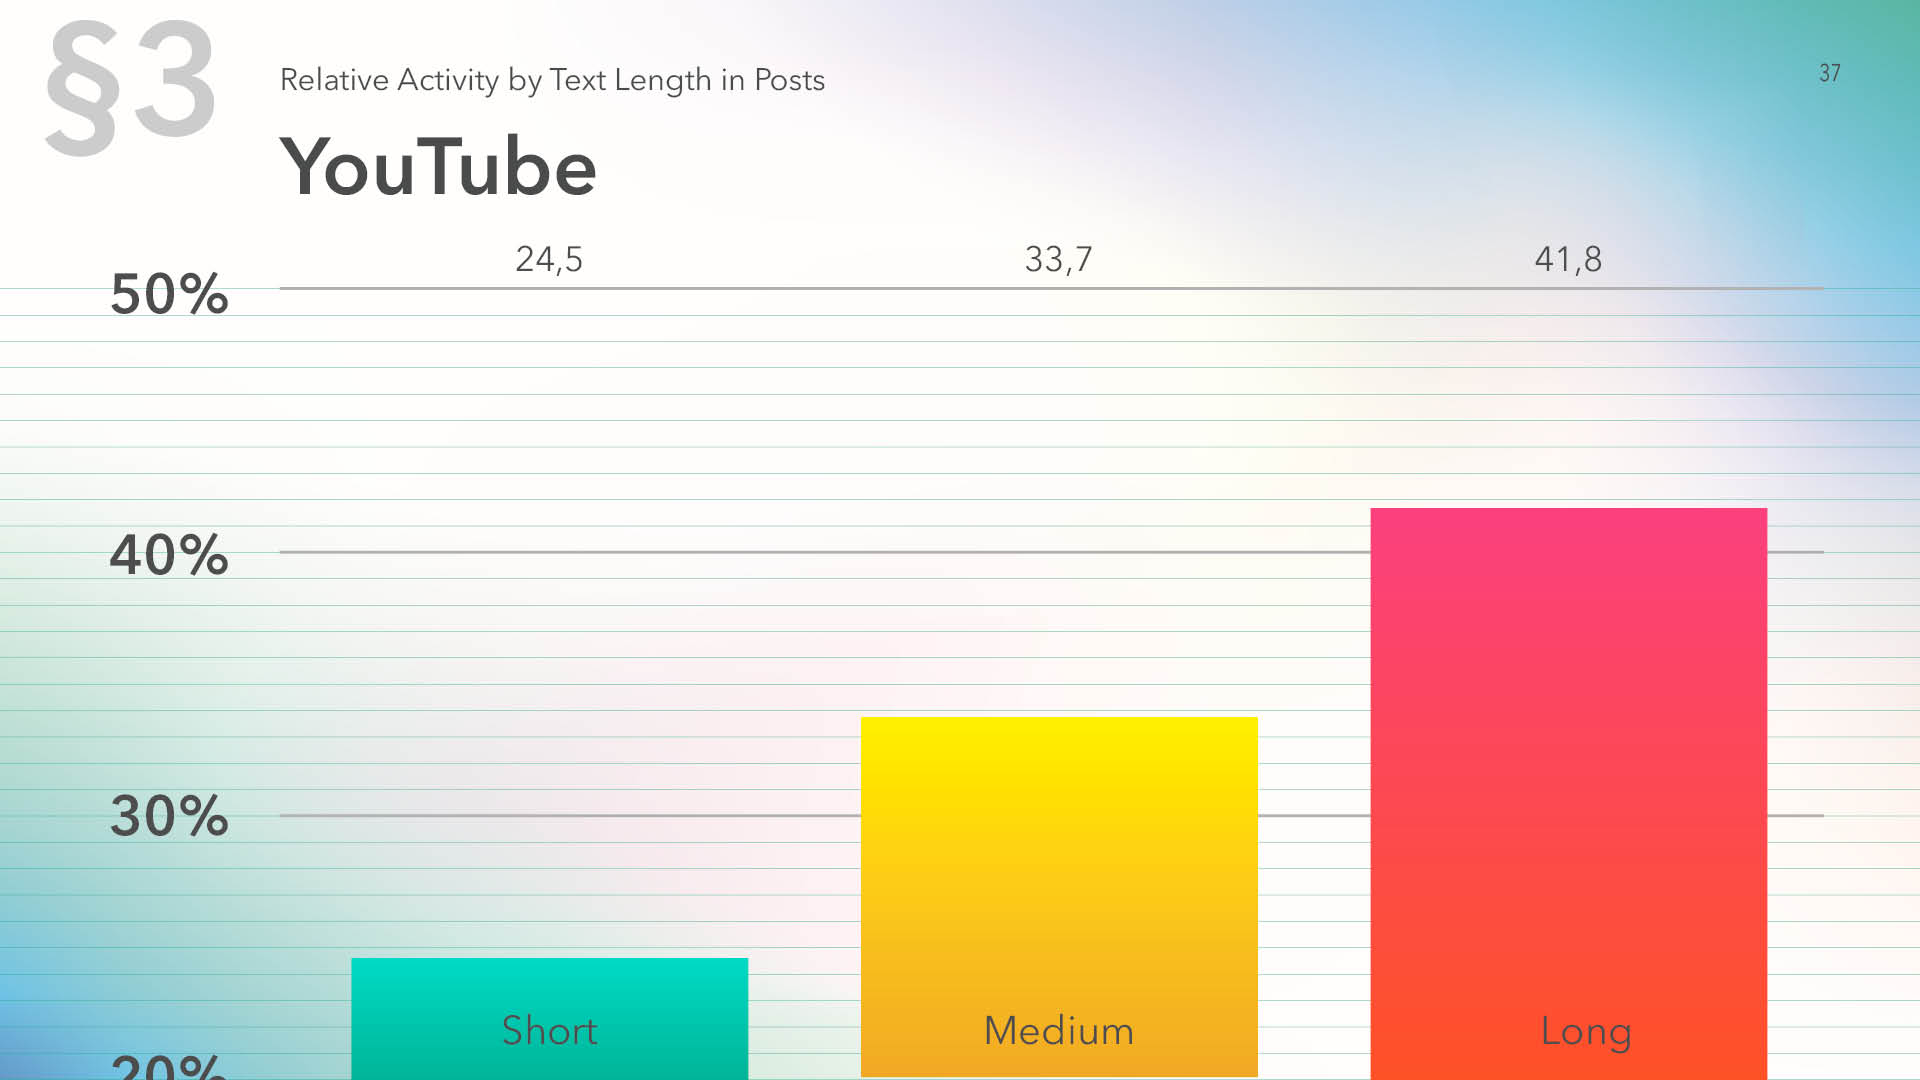 YouTube relative activity by text length in posts for 2019